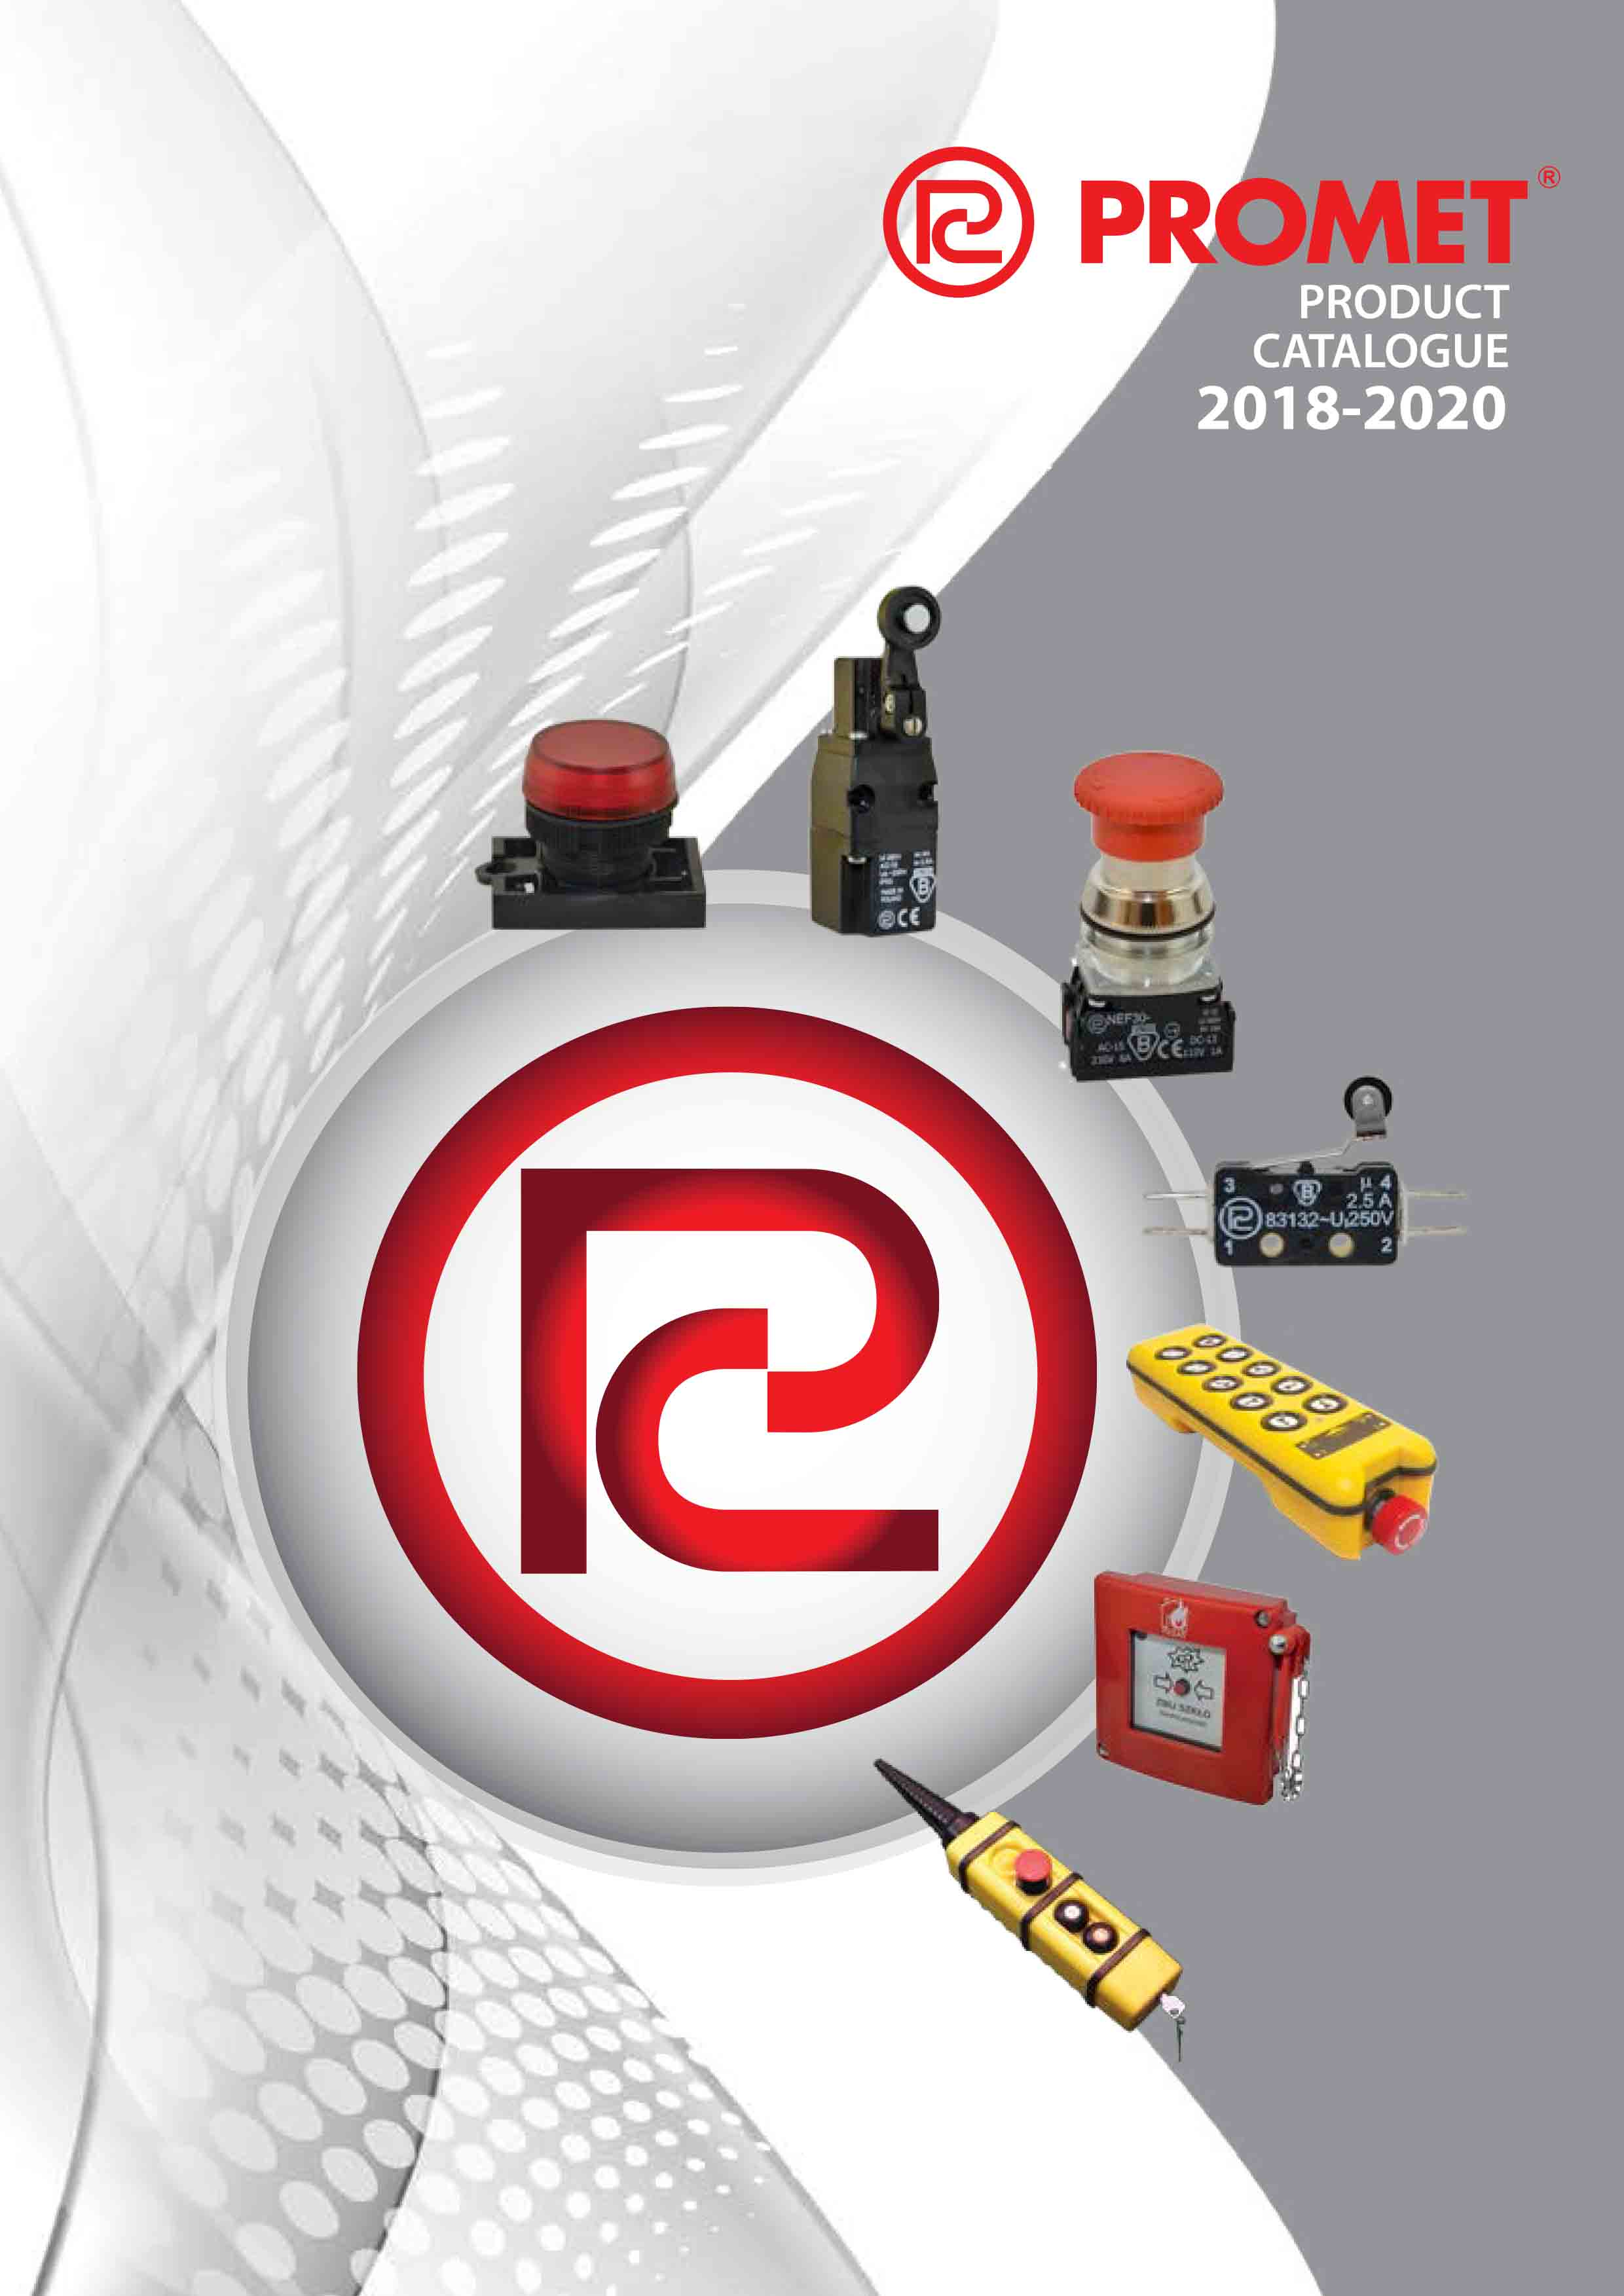 Product catalogue 2018-2020